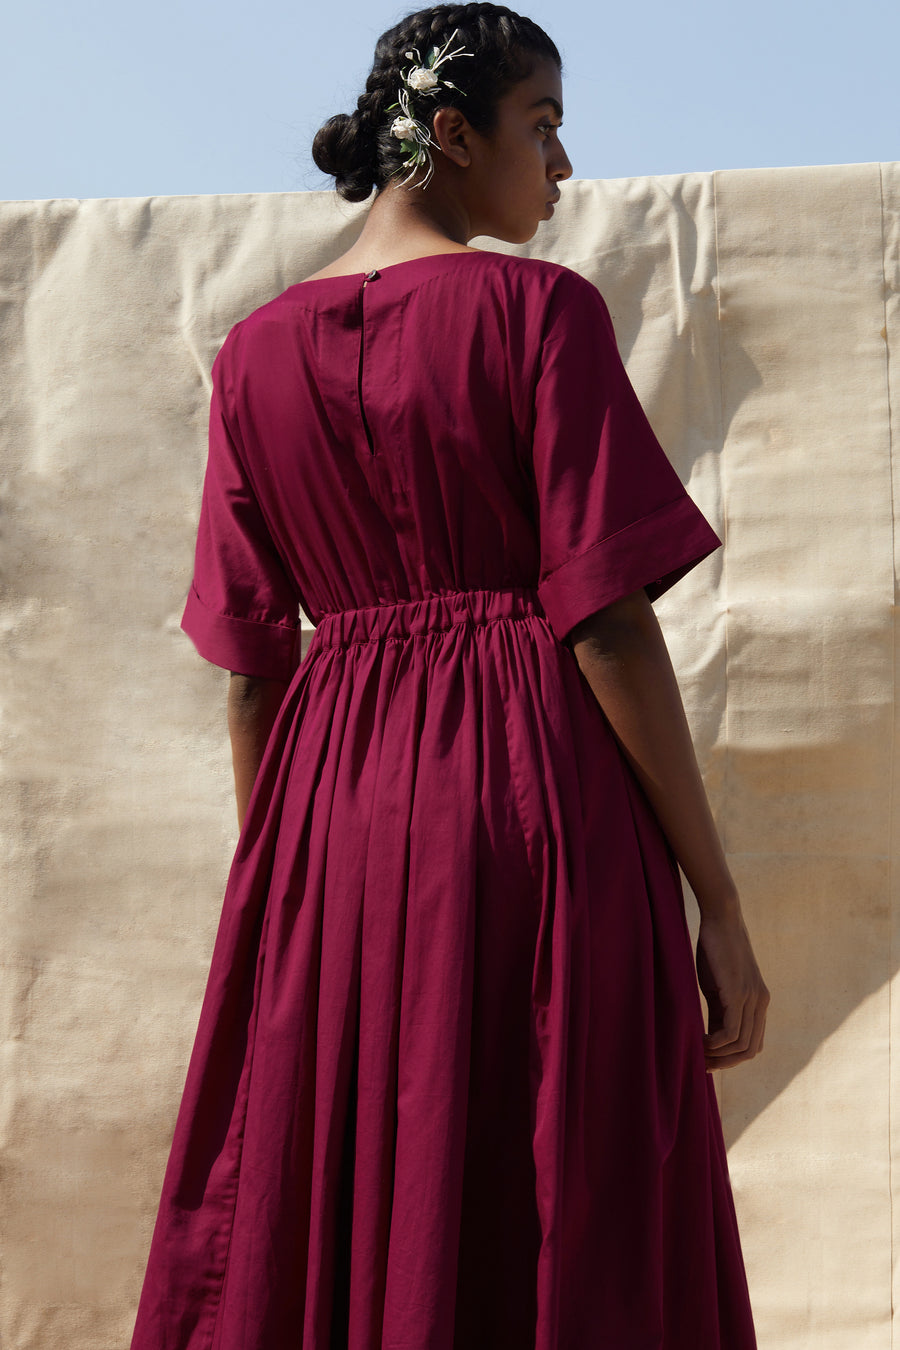 John Dress - Ethical made fashion - onlyethikal